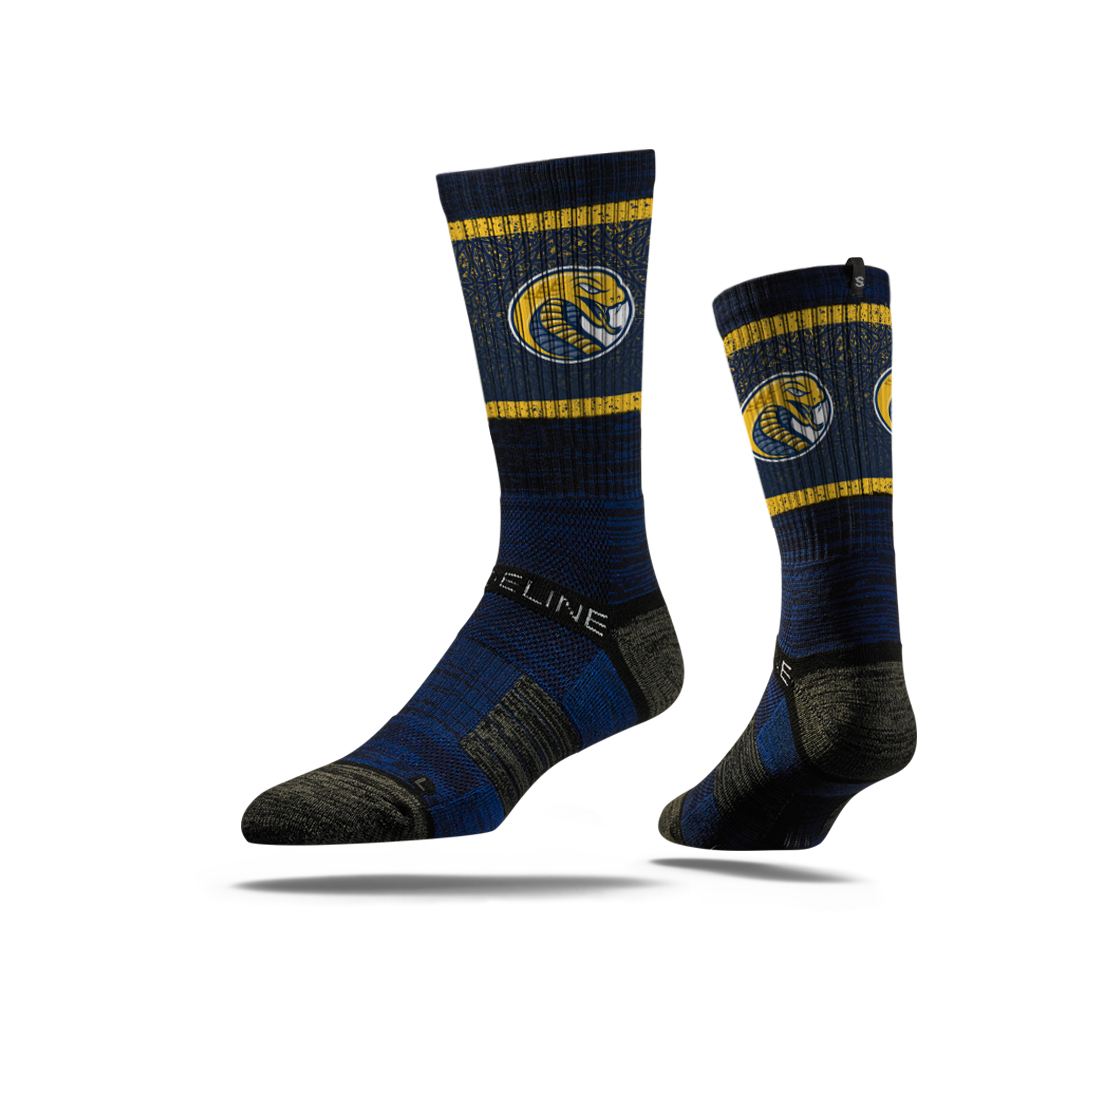 Image For Socks NAVY STRIDELINE SOCKS